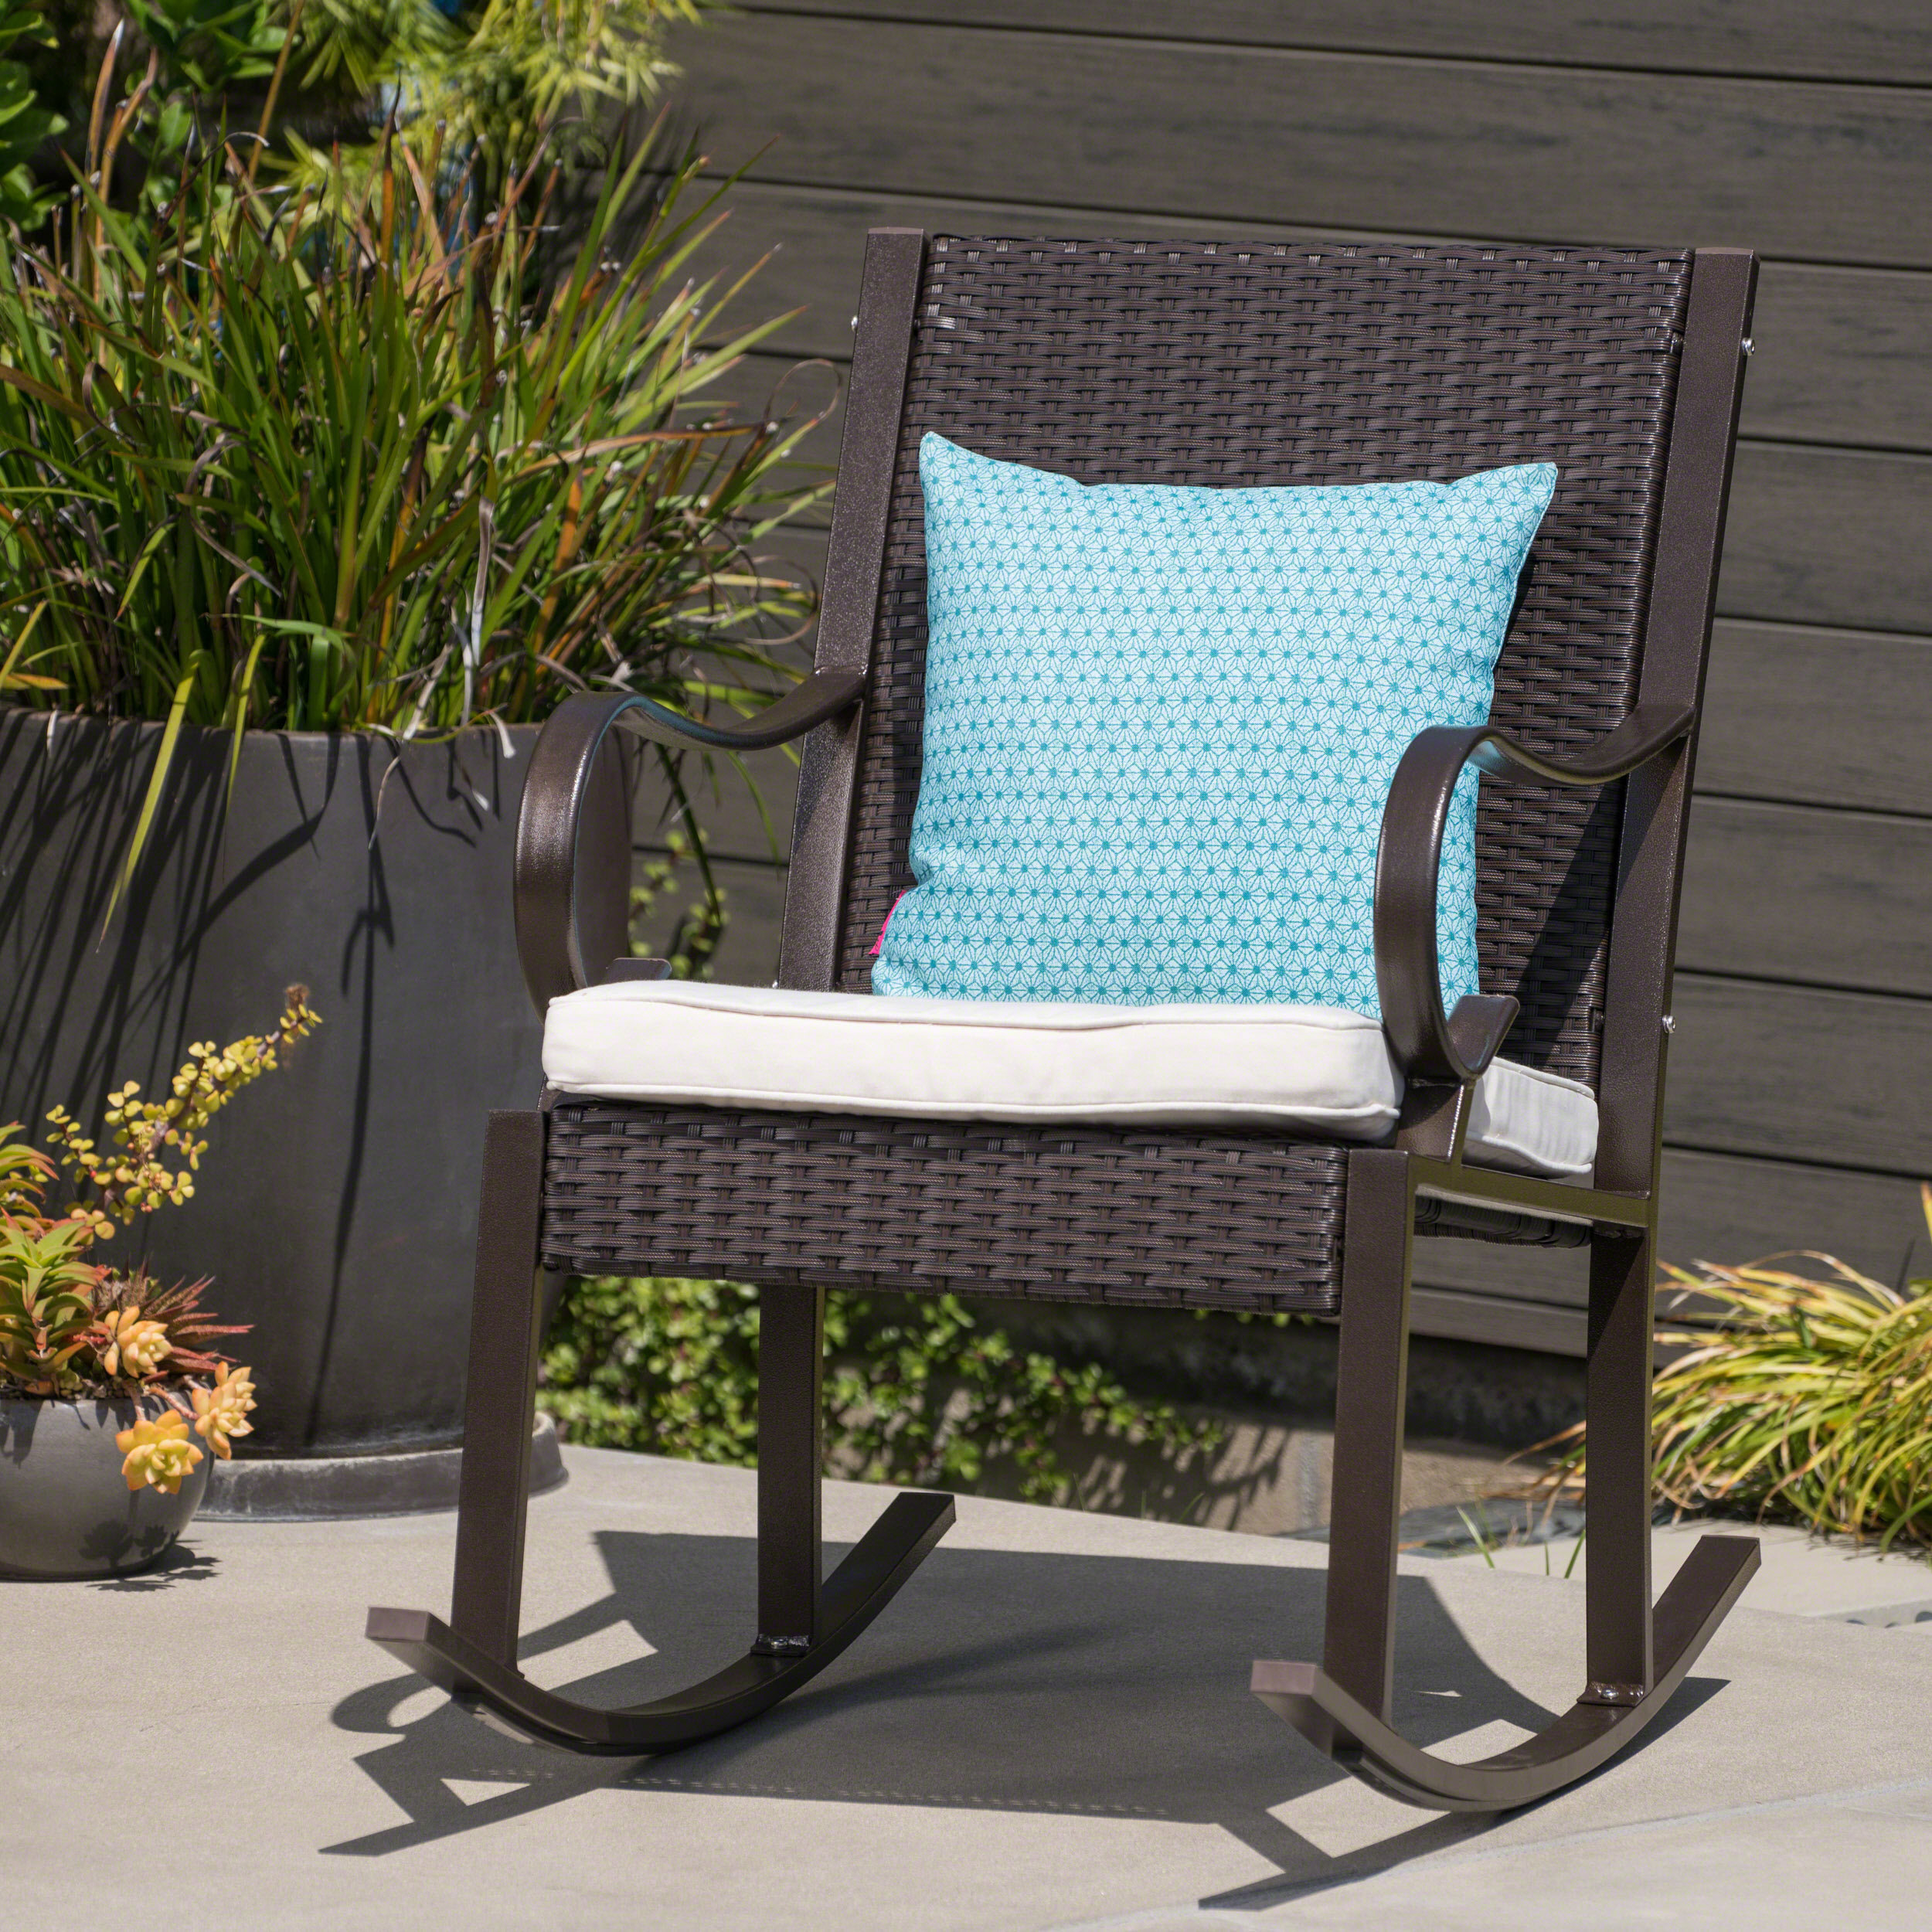 Kampmann Outdoor Wicker Rocking Chair With Cushions With Regard To Rocking Chairs, Cream And Brown (View 8 of 20)